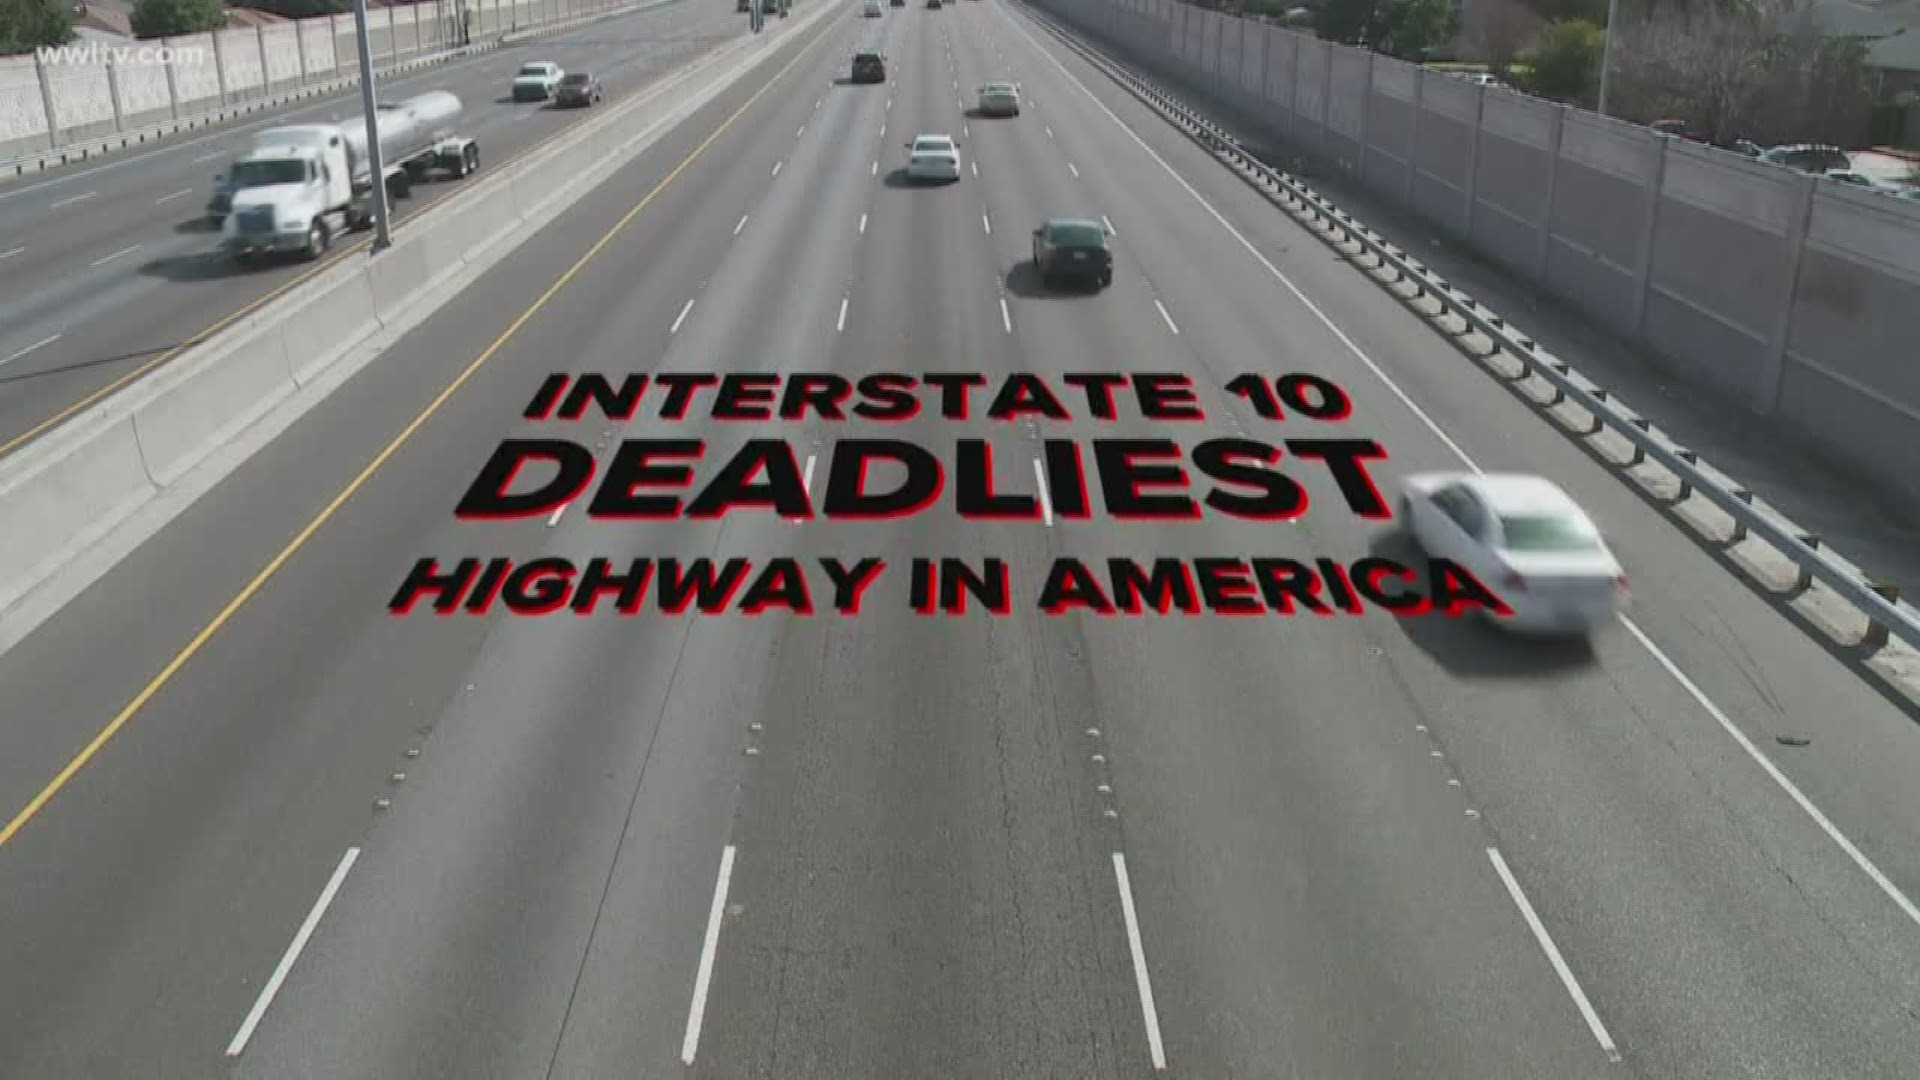 I 10 Most Deadly Highway In U S For Holiday Travel Study Shows